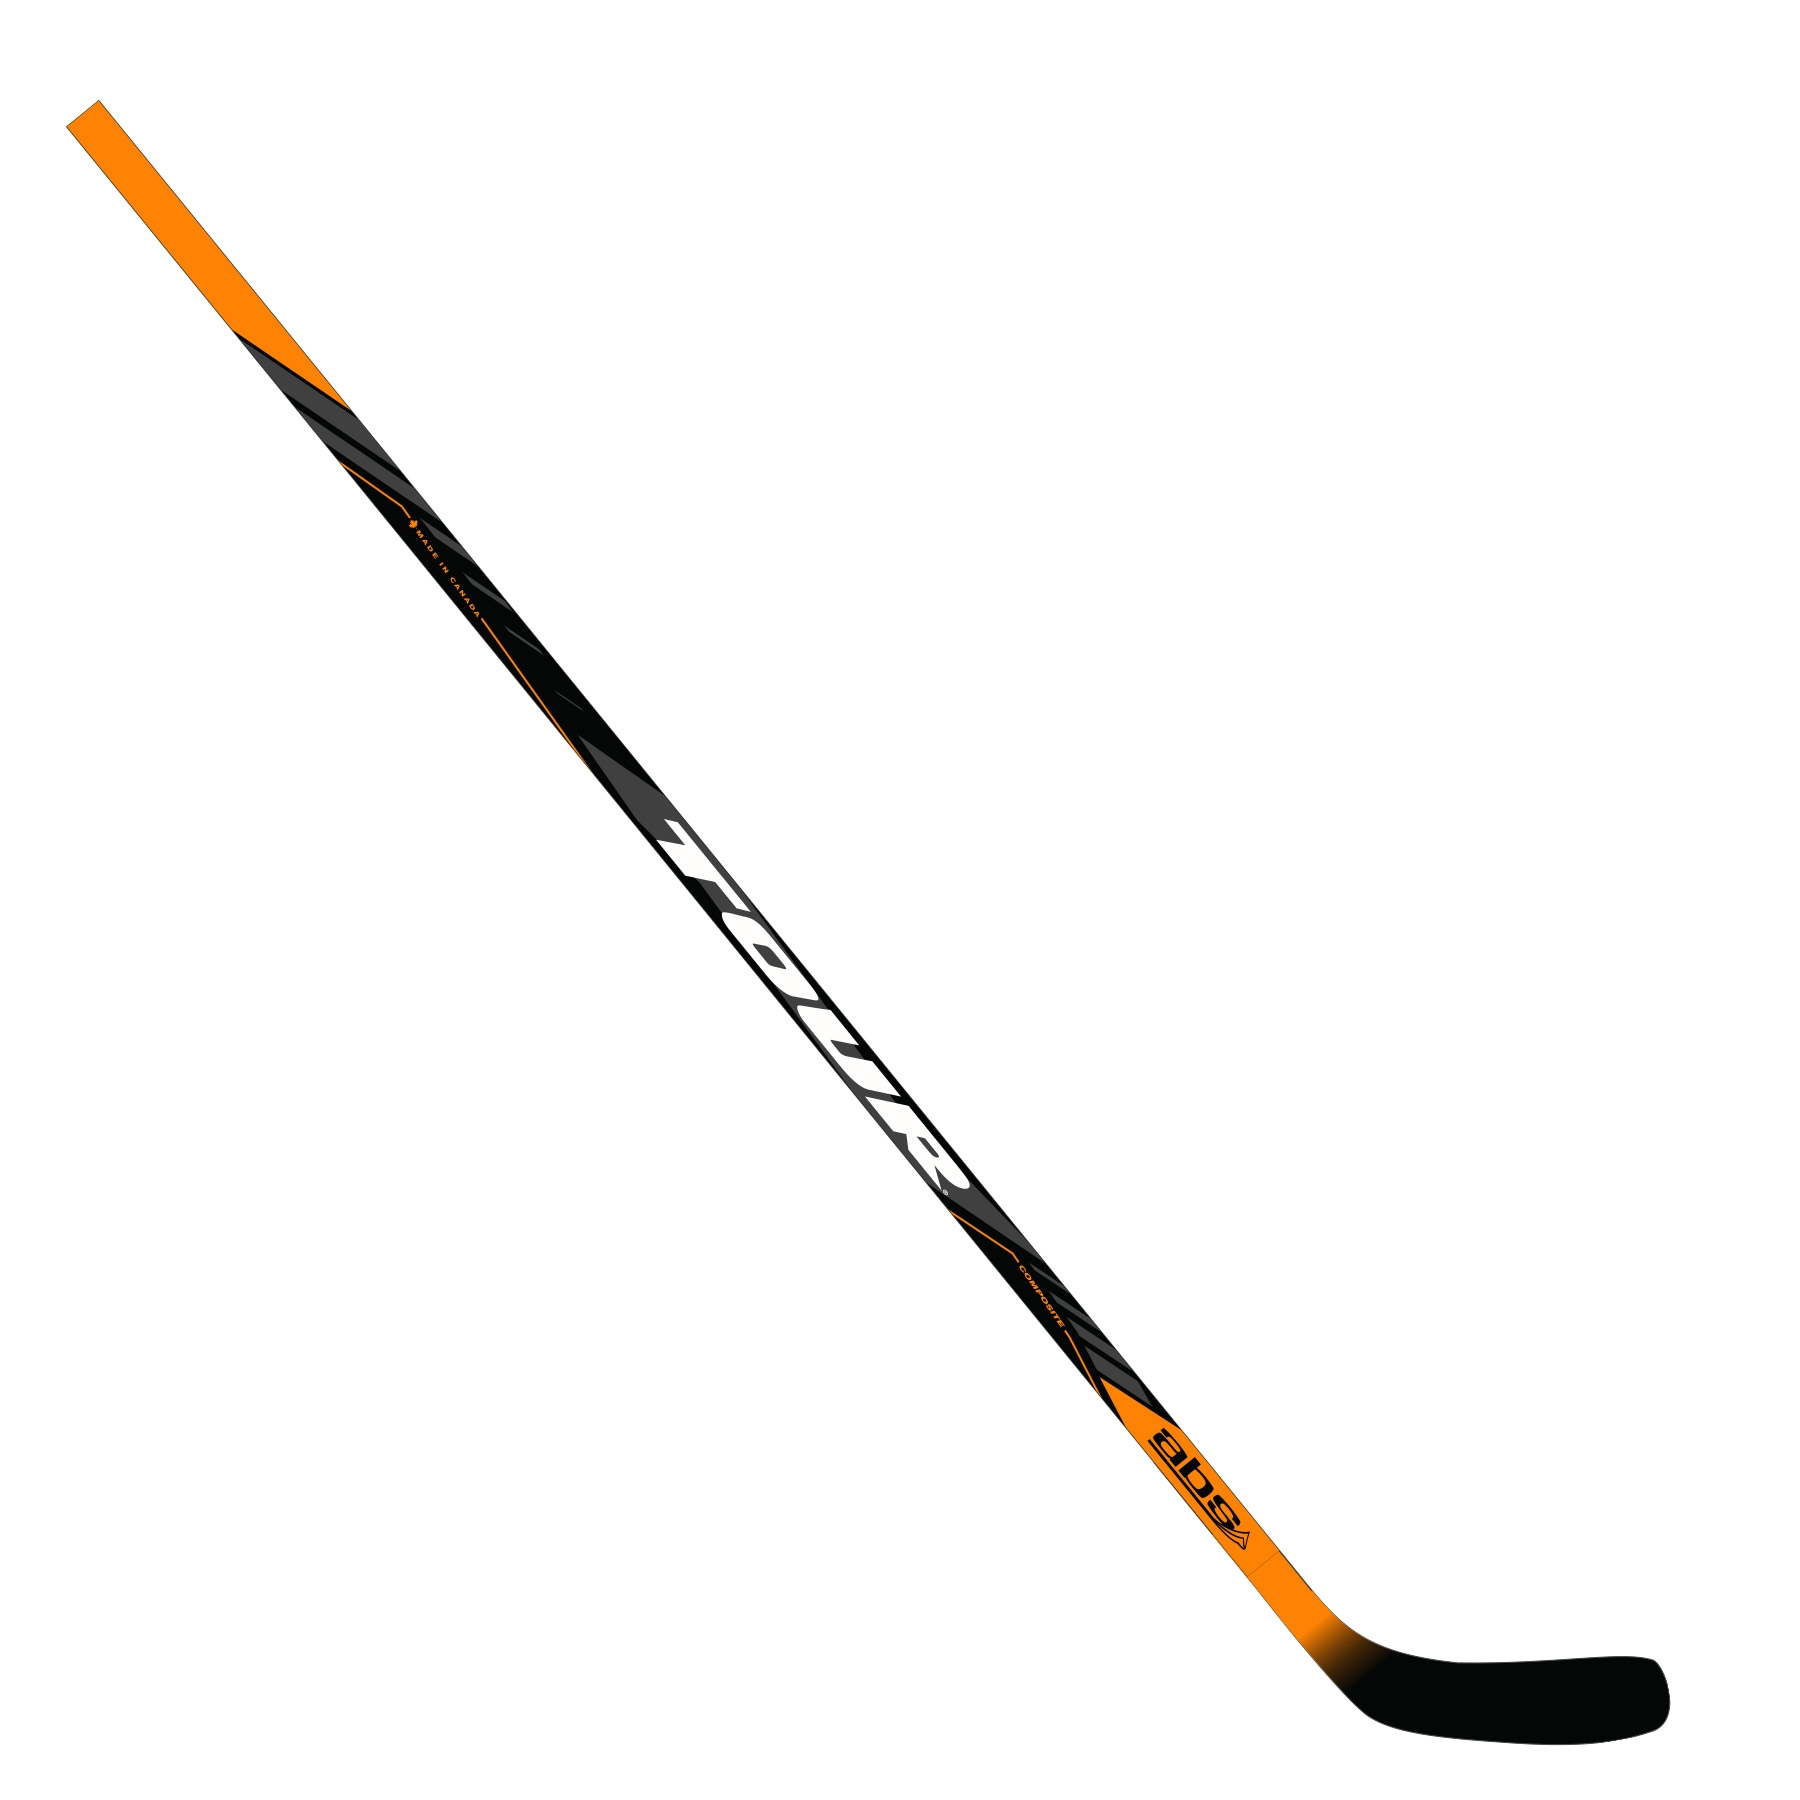 1800x1800 Q 40 Composite Hockey Stick